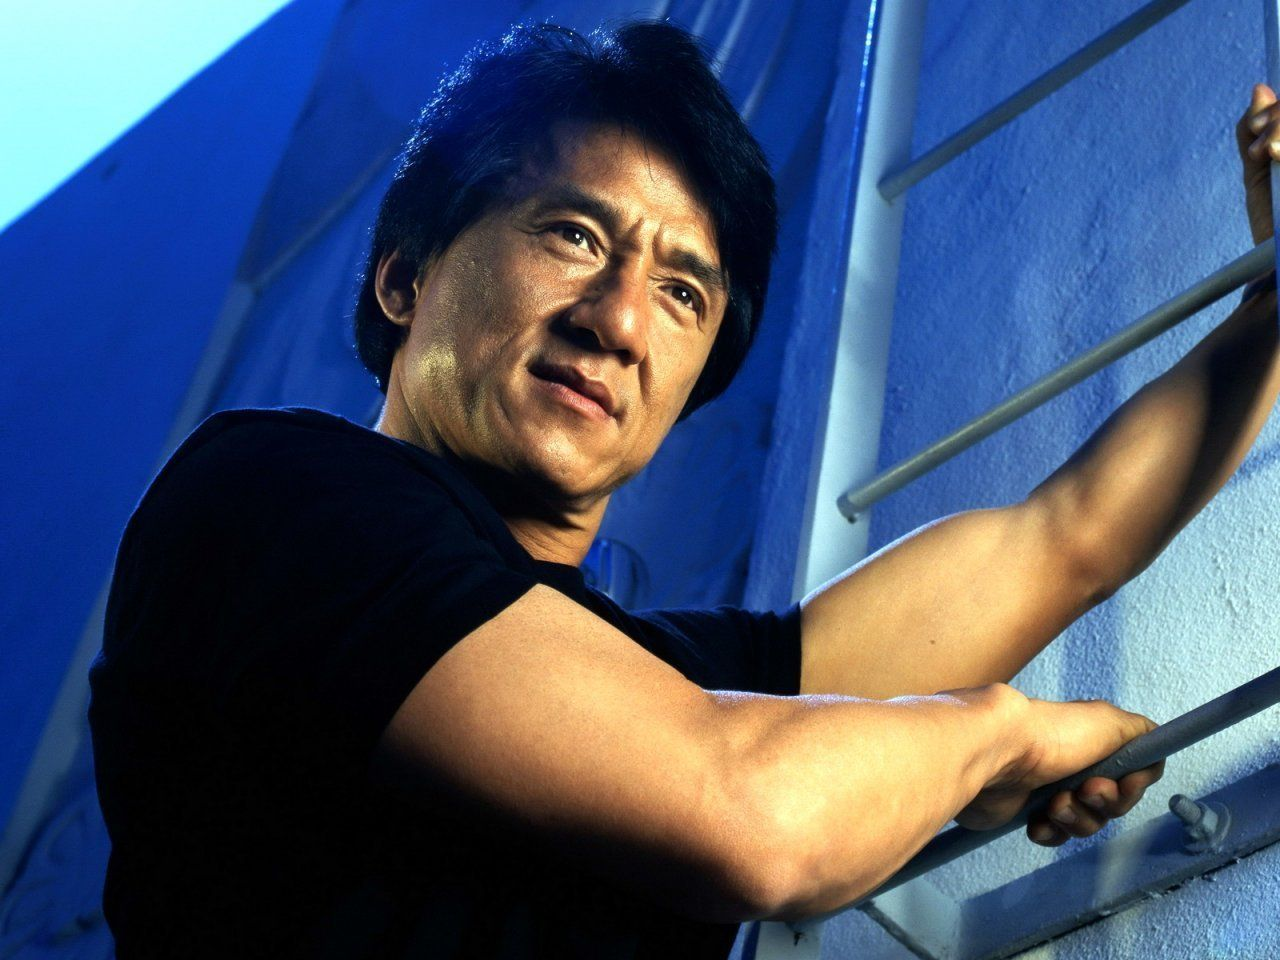 Jackie-Chan-An-Asian-Actor-Who-Has-Net-Worth-and-Fame-Equal-With-Hollywood-Actors